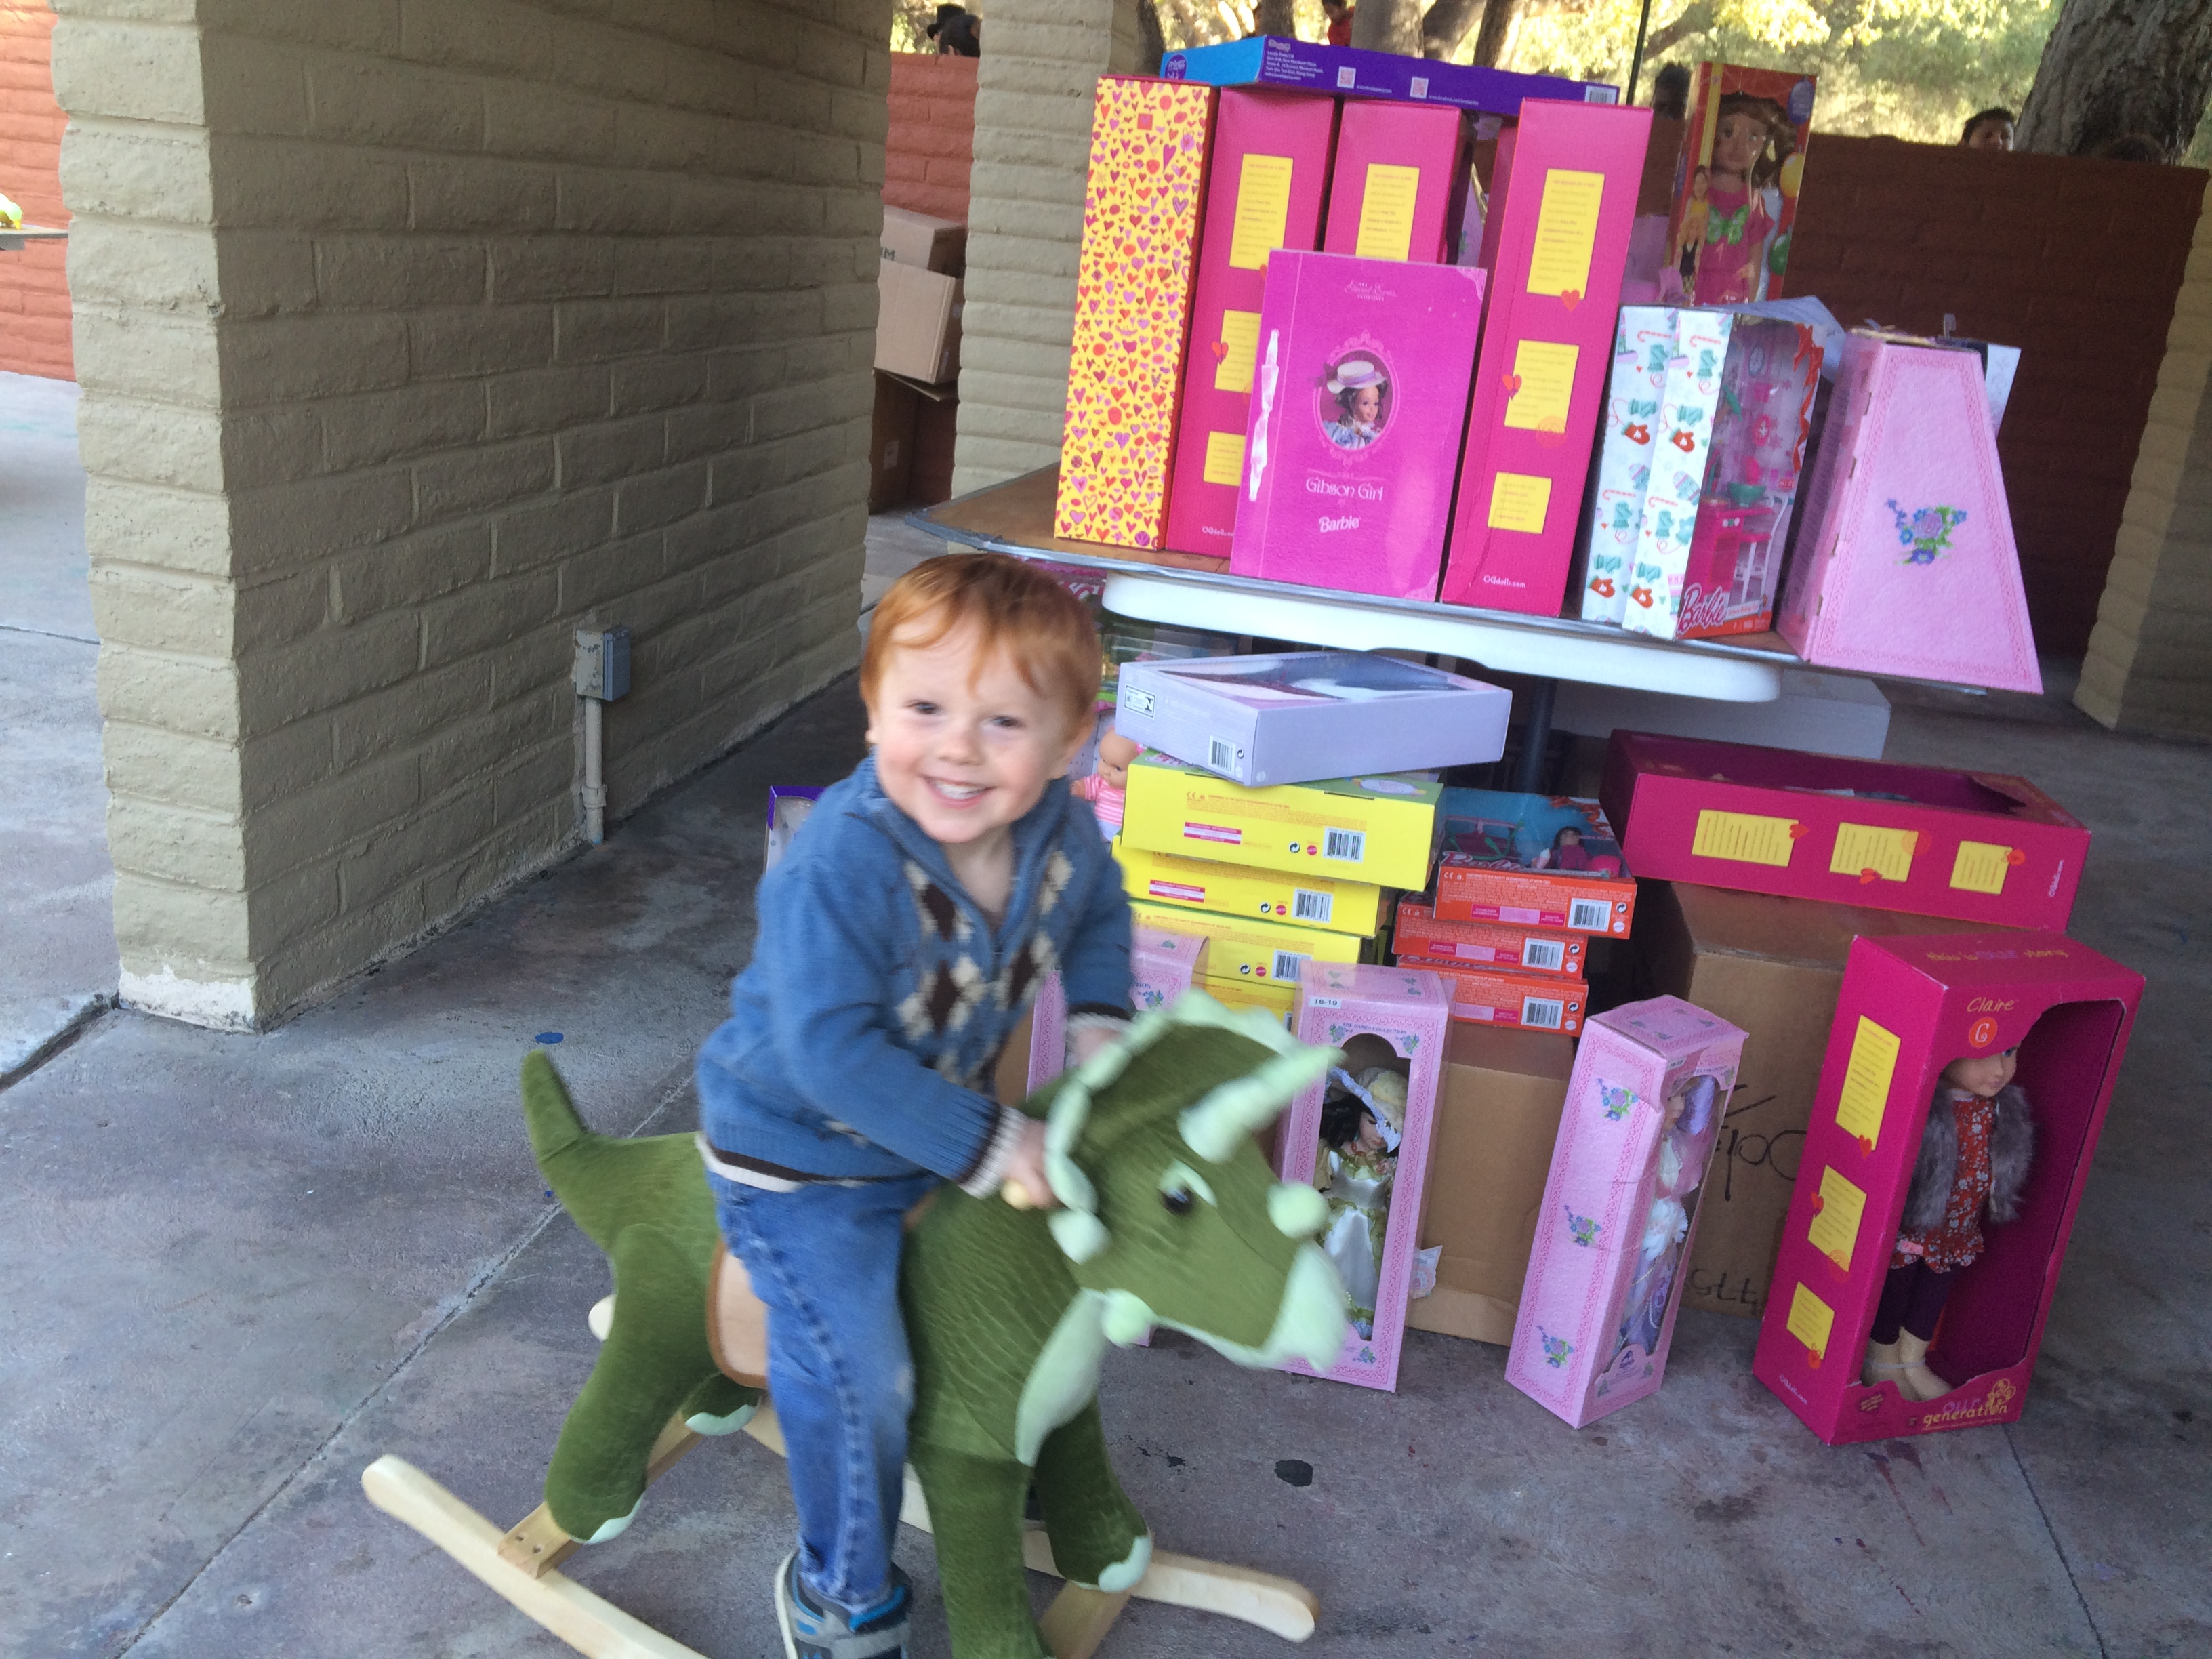 Photos by Mary O'KEEFE Zeke Cross, 3, straddles his new most favorite toy – a rocking stegosaurus – that he chose at CV Park on Saturday morning as part of the CV Sheriff's Toy and Food Drive.